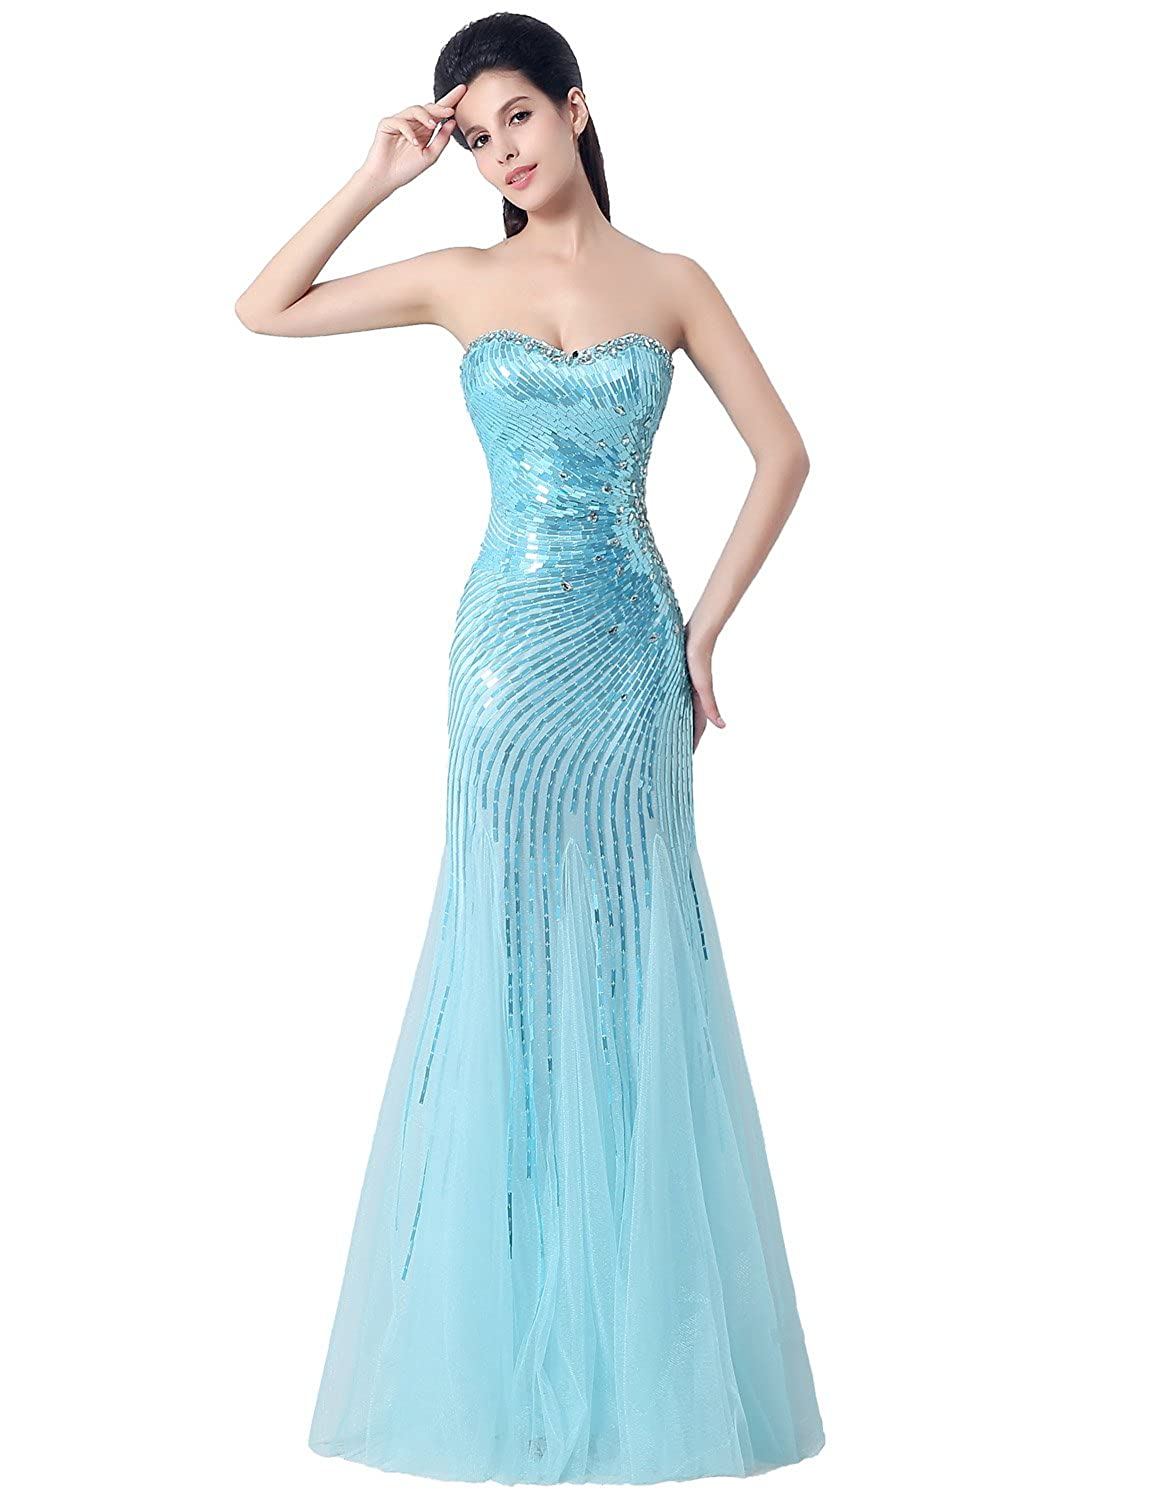 Favebridal Women's Long Sweetheart Formal Evening Prom Dress XZ005